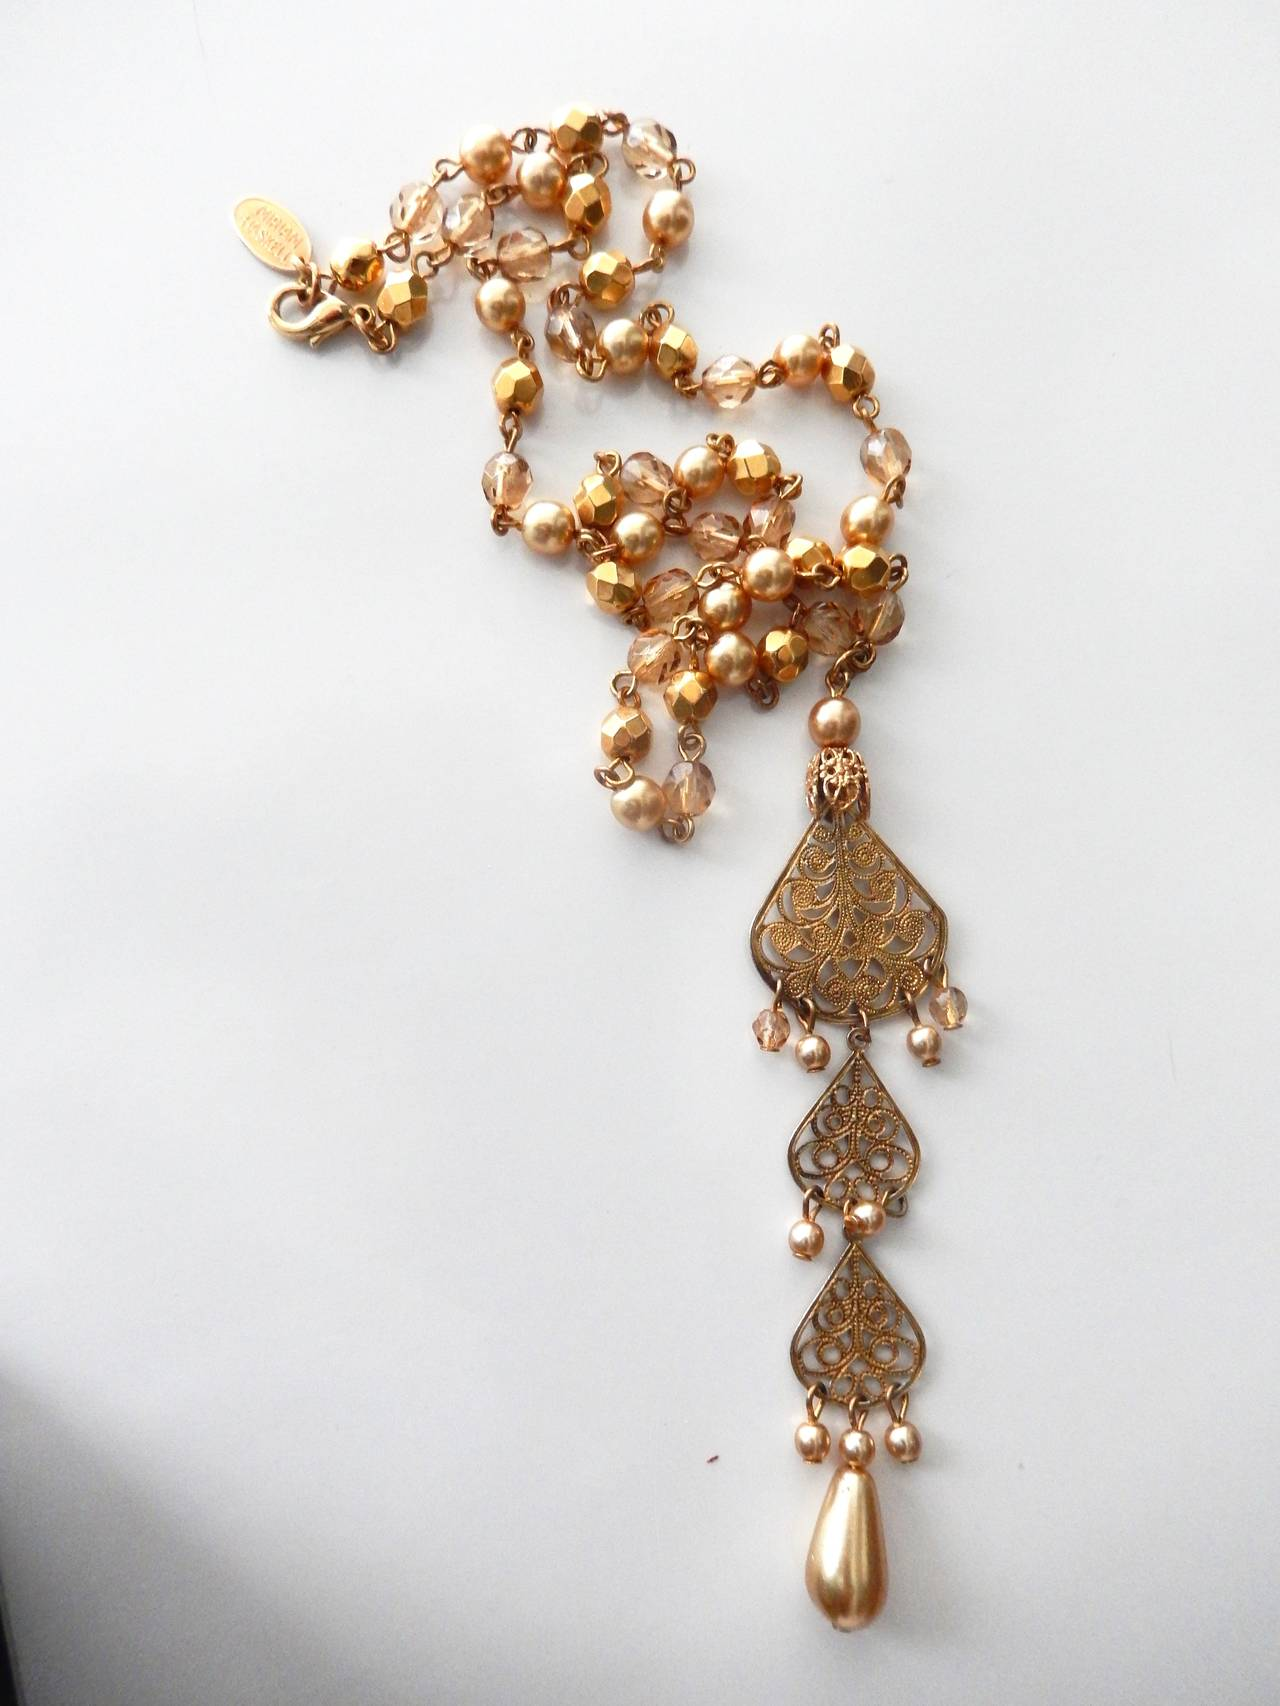 1970s Miriam Haskell Faceted Bead and Pearl Necklace with Pendant For Sale 6